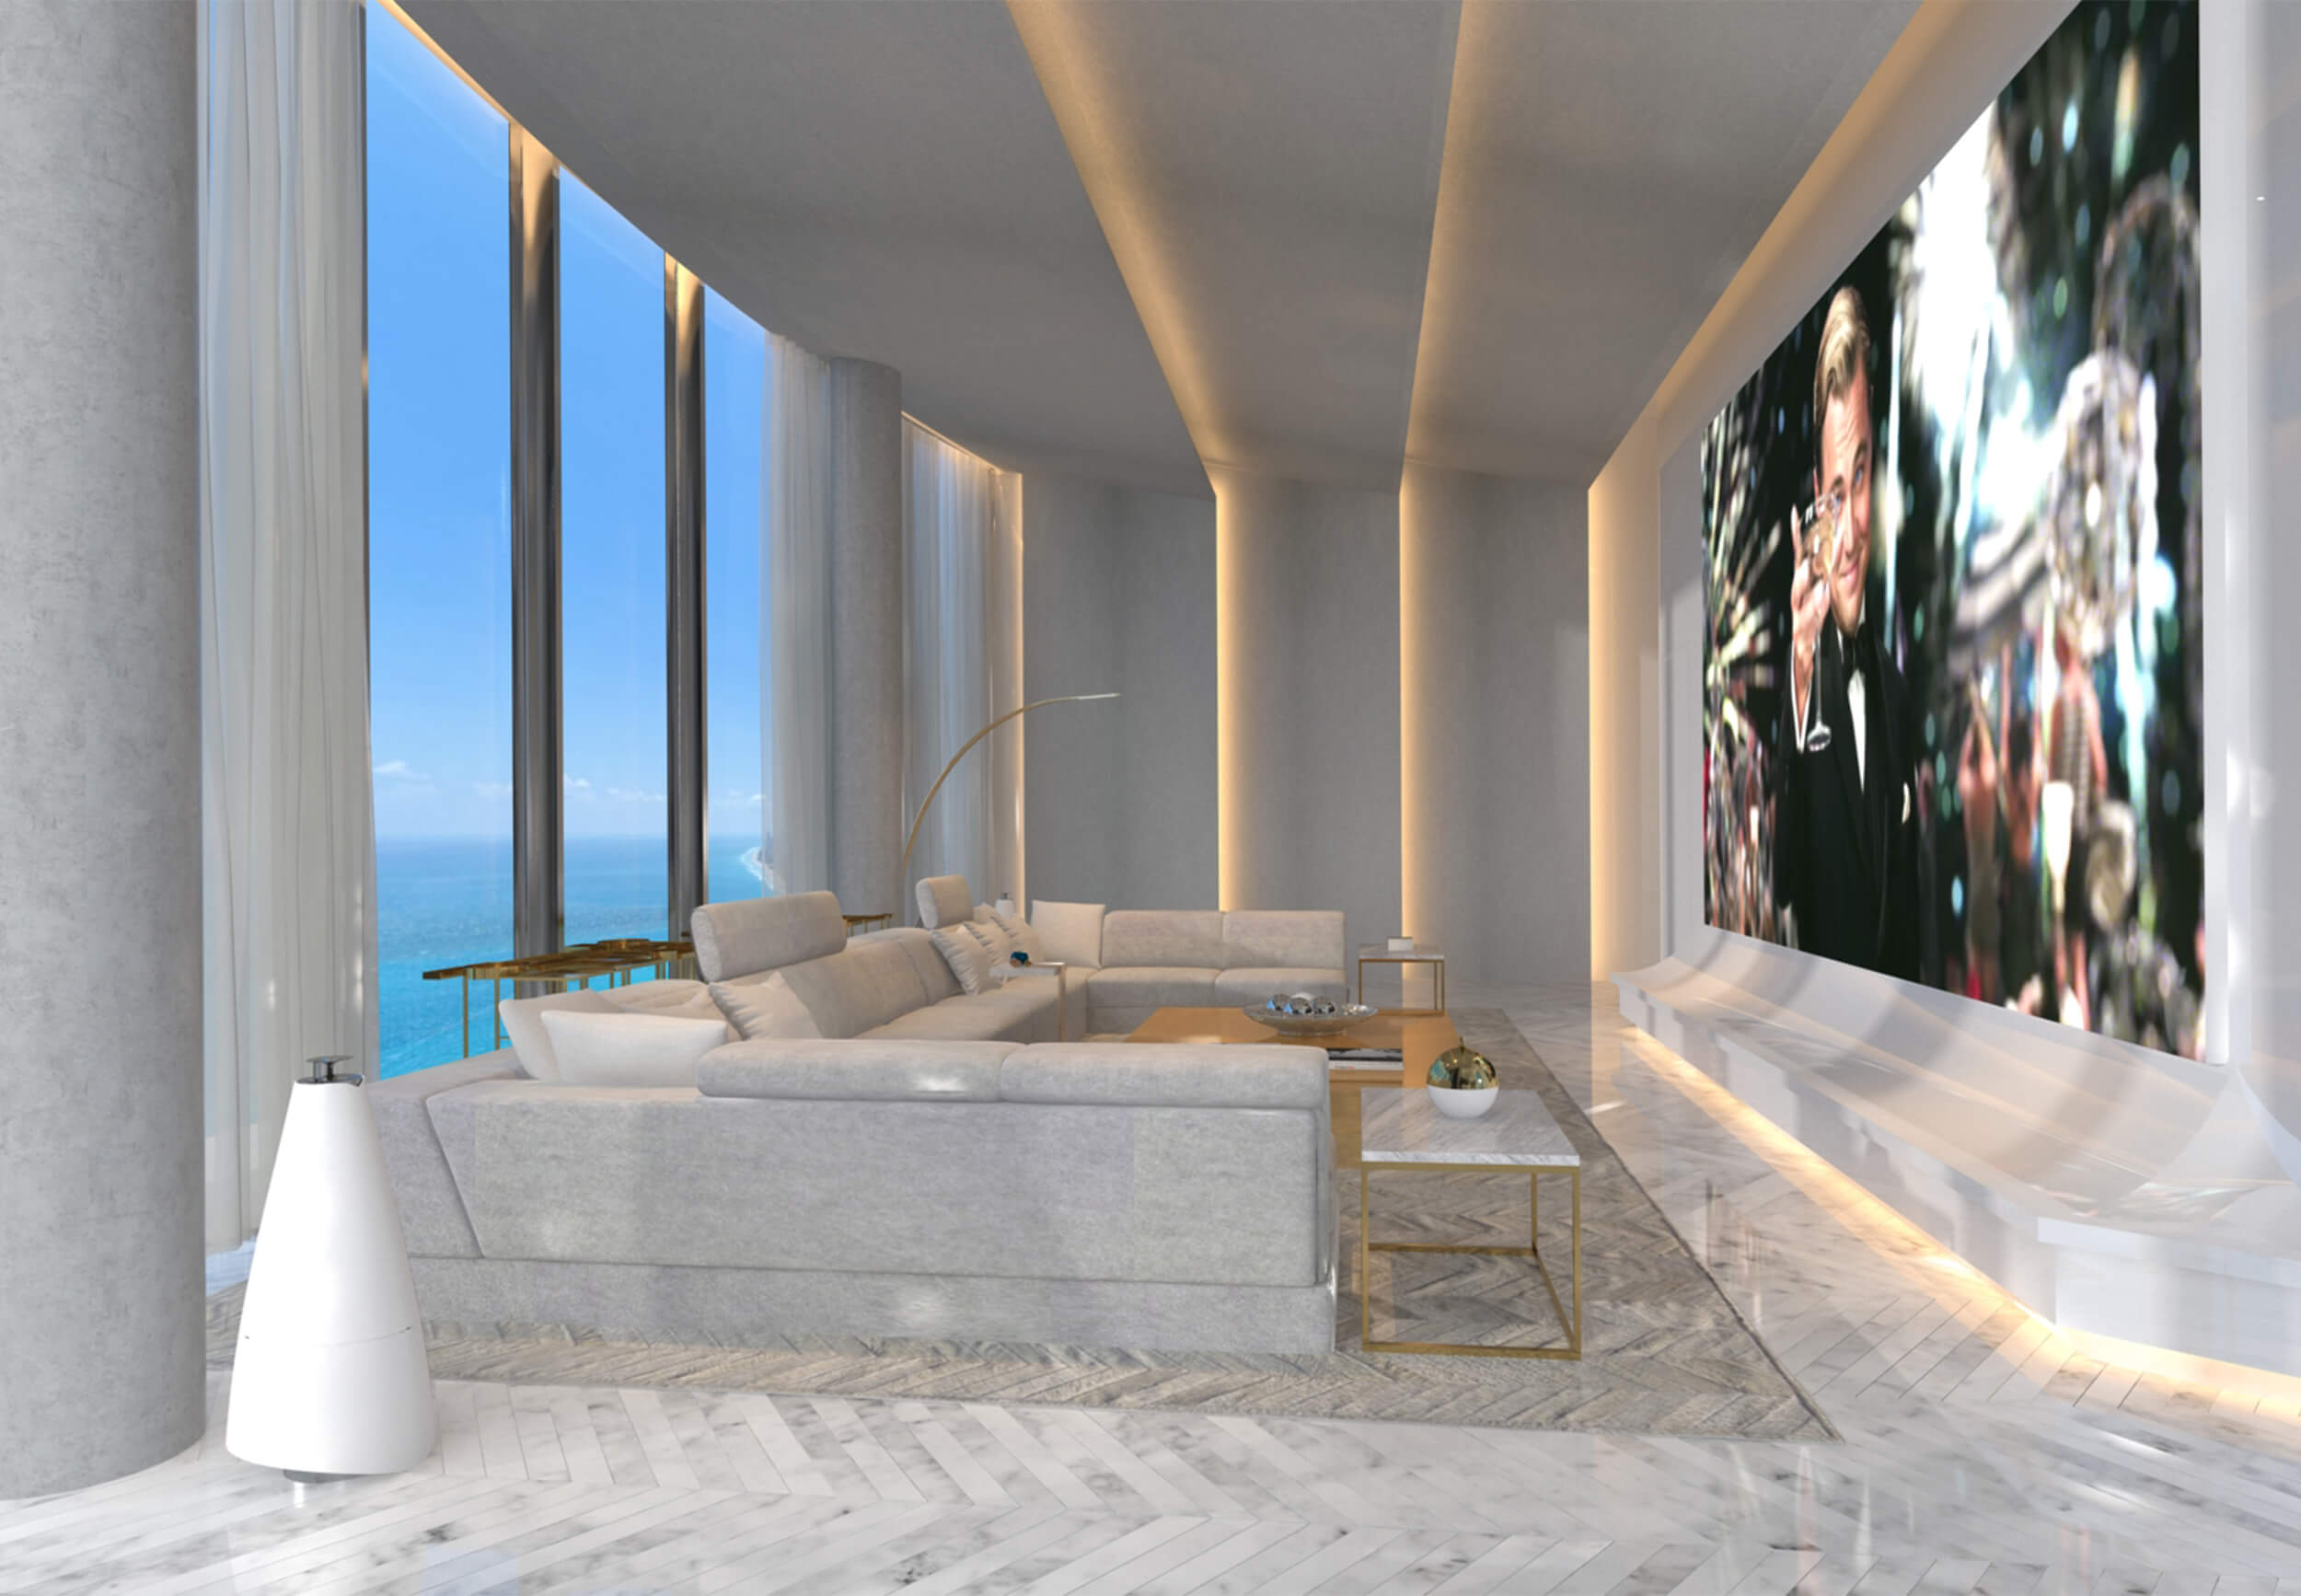 Media room design for the PH at the Ritz Carlton Residences in Sunny Isles Beach